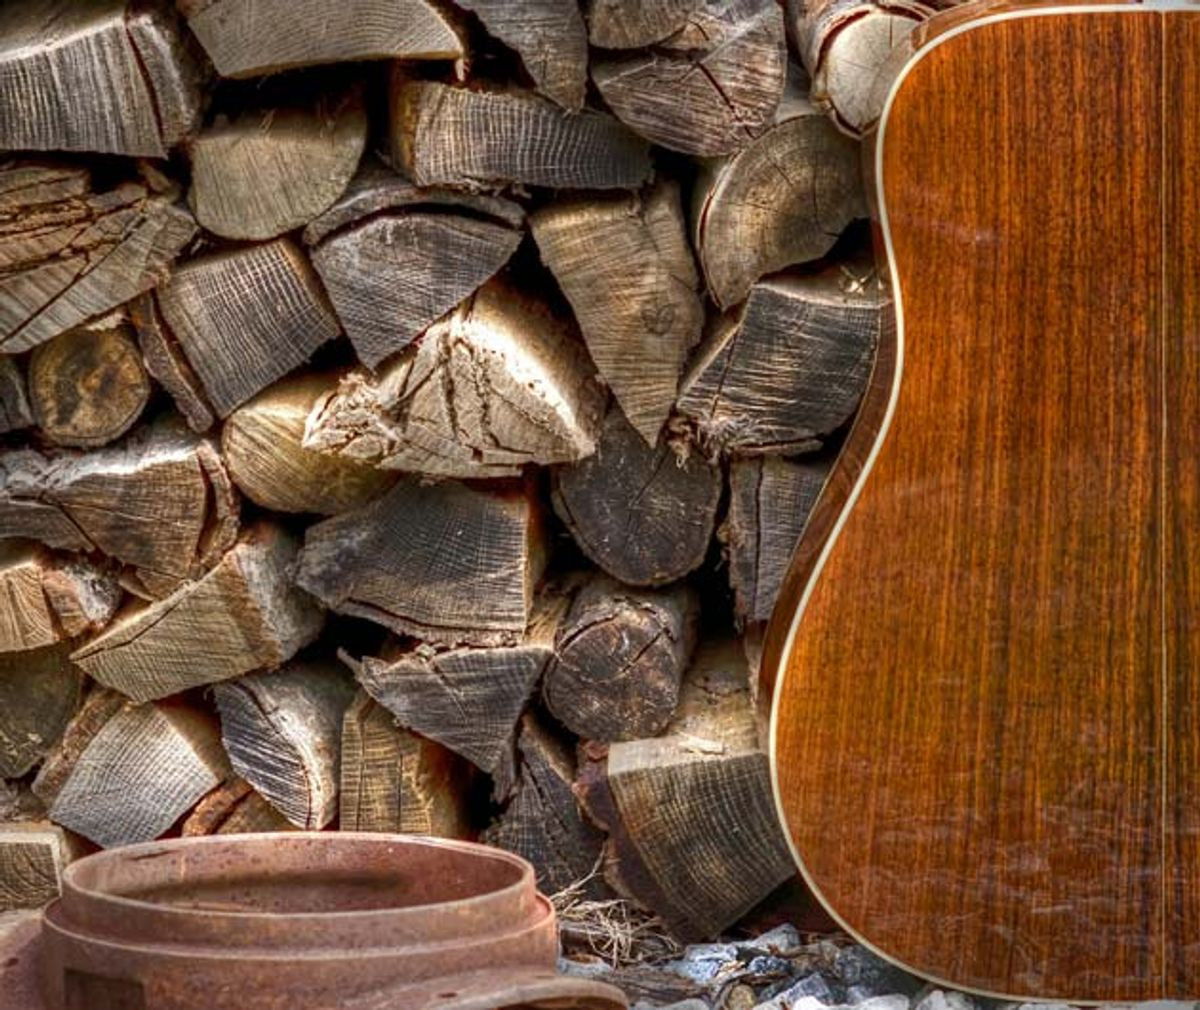 Esoterica Electrica: An Axe to Grind